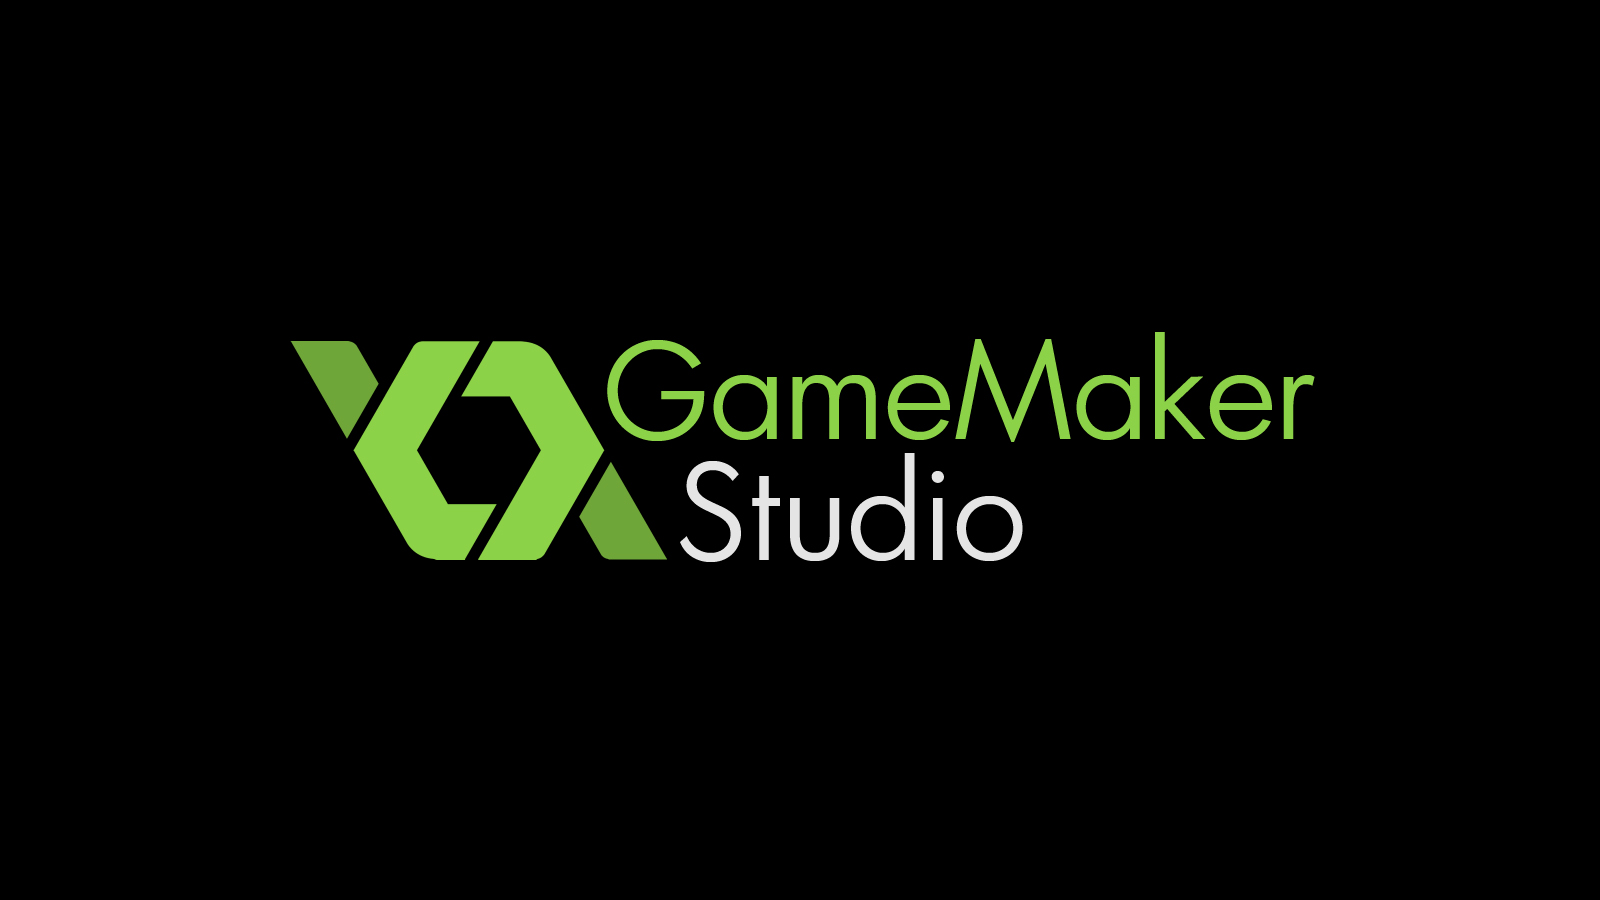 Game maker color blend - Full Resolution Download Image Game Maker Color Blend